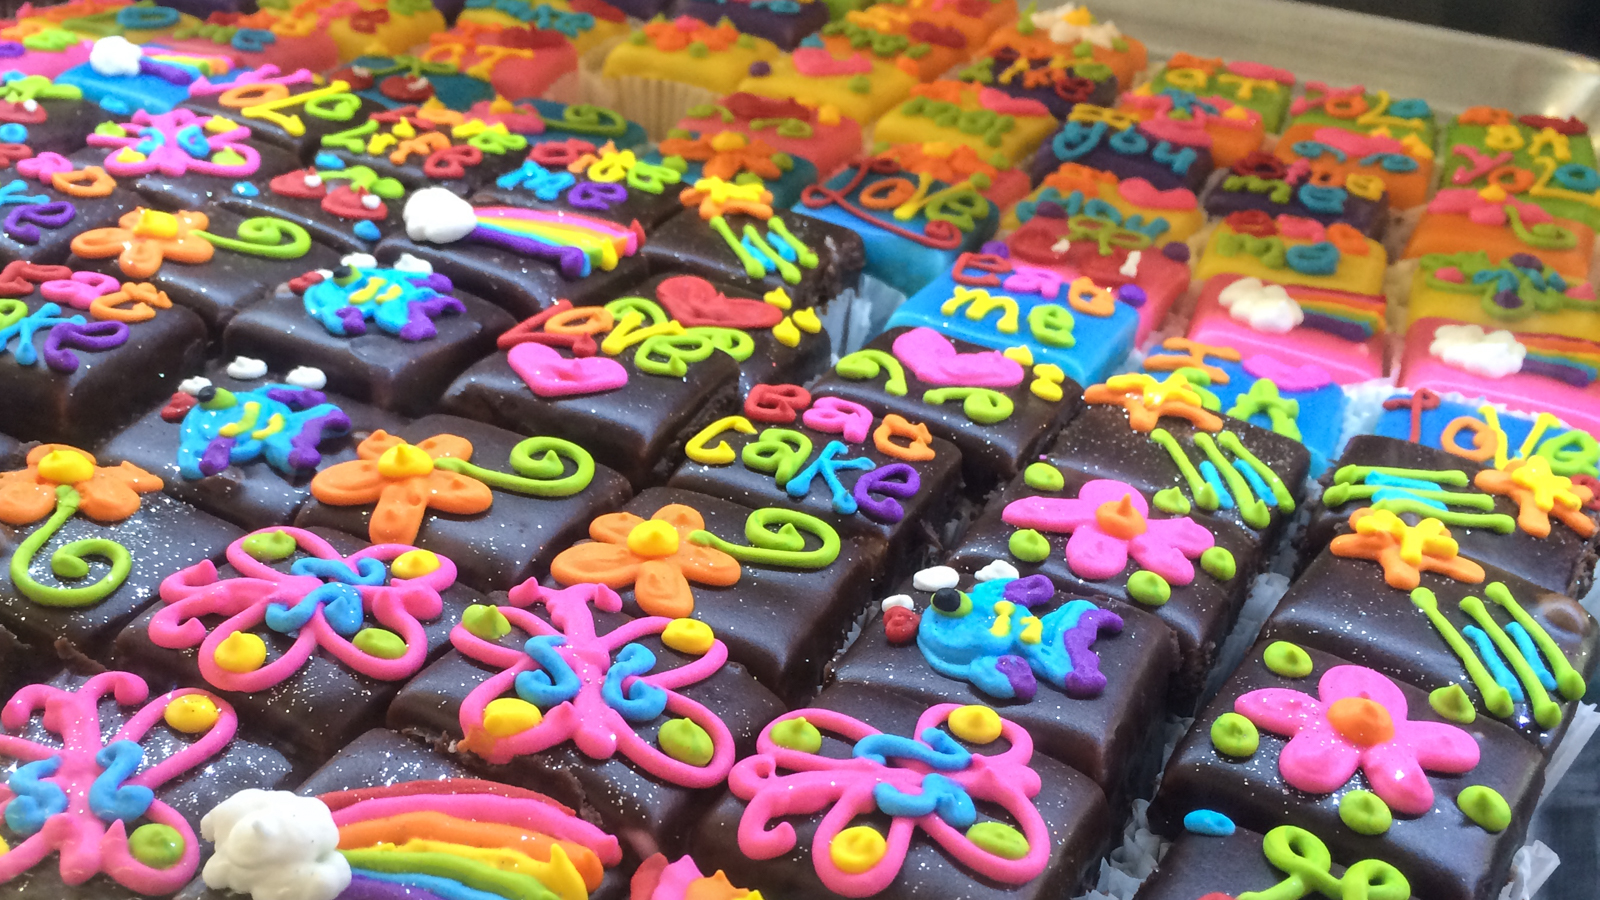 charlys-bakery-cookies-1